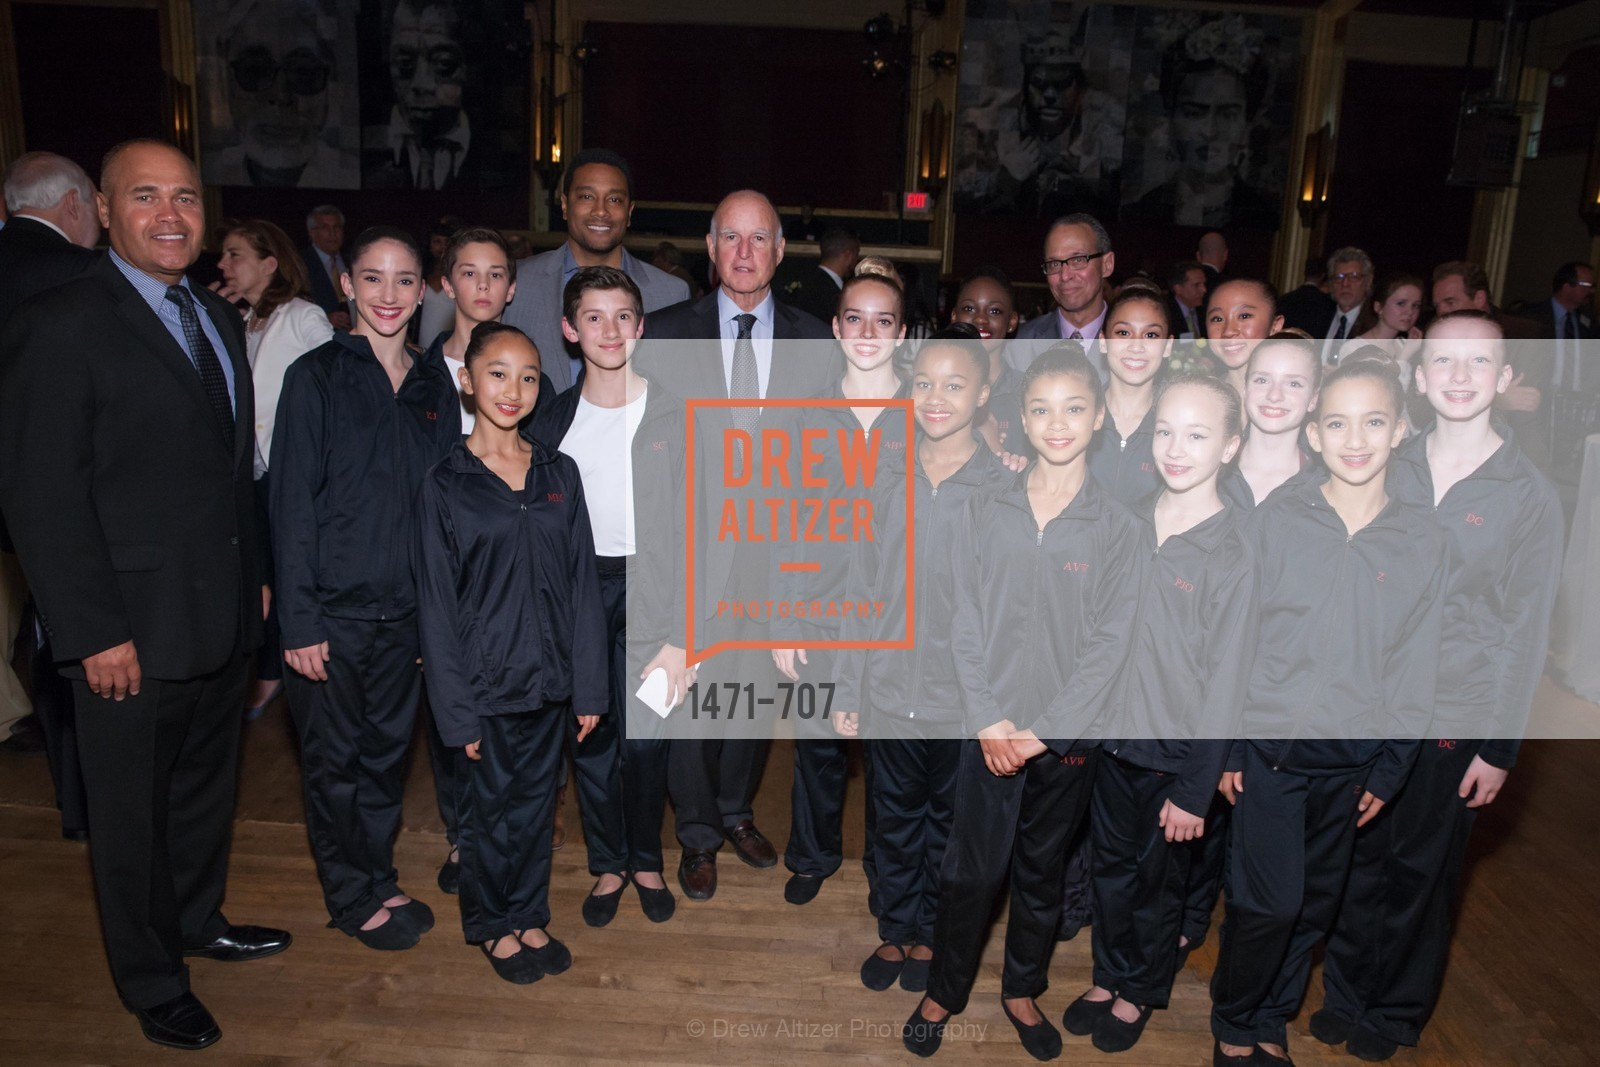 Hank Fore, Ken Maxey, Gov. Jerry Brown, Don Harris, Students, OAKLAND SCHOOL FOR THE ARTS Gala 2015 with Governor Jerry Brown, US, May 8th, 2015,Drew Altizer, Drew Altizer Photography, full-service agency, private events, San Francisco photographer, photographer california